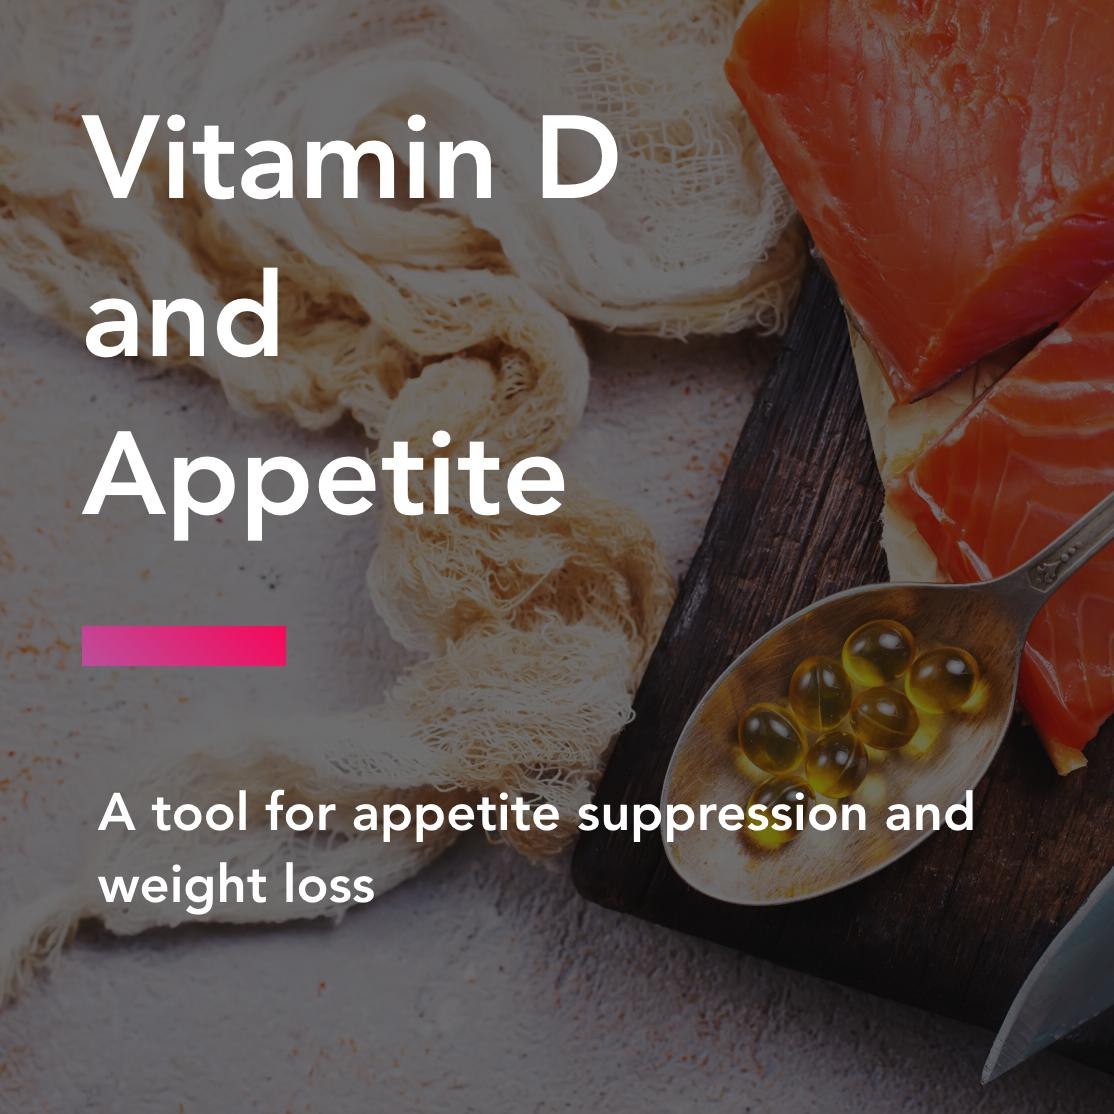 Vitamin D and Appetite title